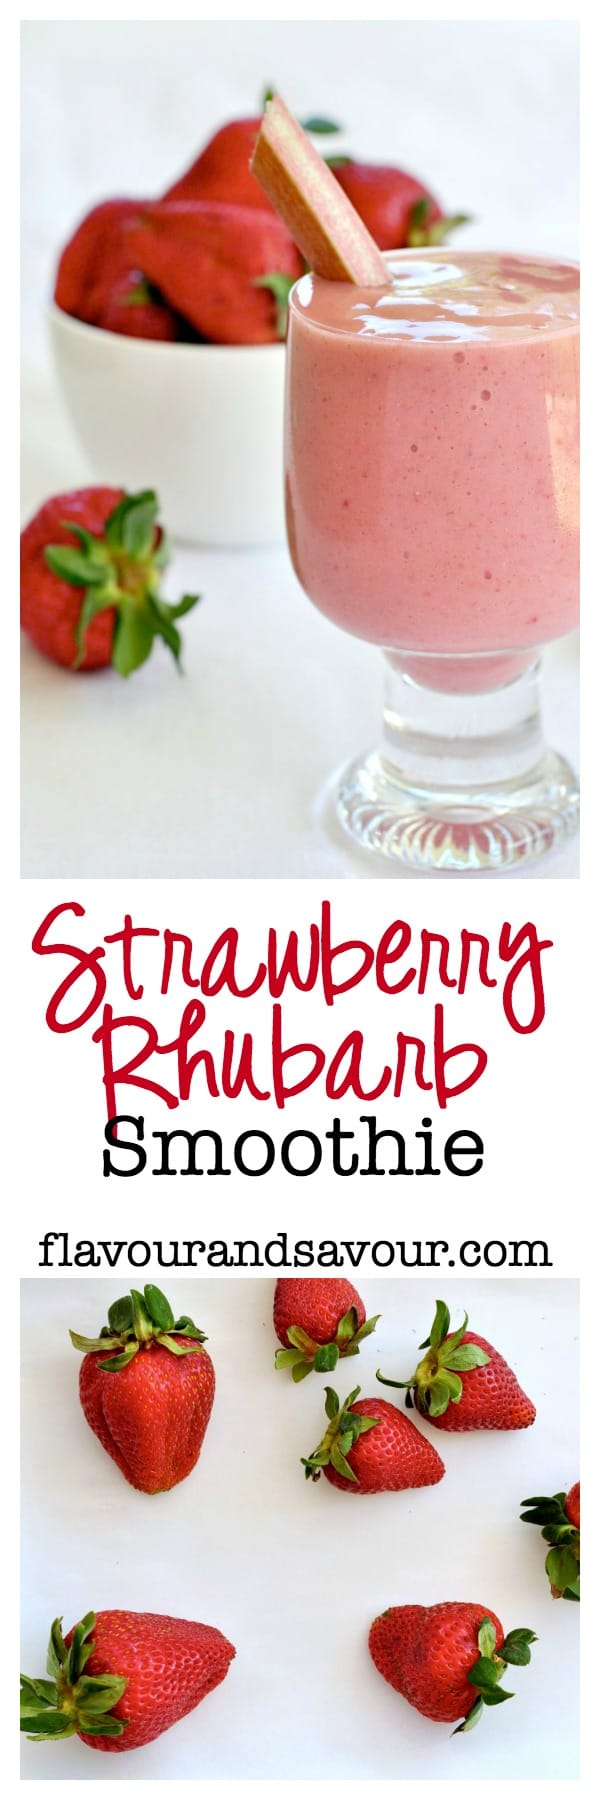 A healthy rhubarb smoothie made with non-dairy milk and chia seeds, naturally sweetened with strawberries and bananas. #strawberryrhubarb #smoothie